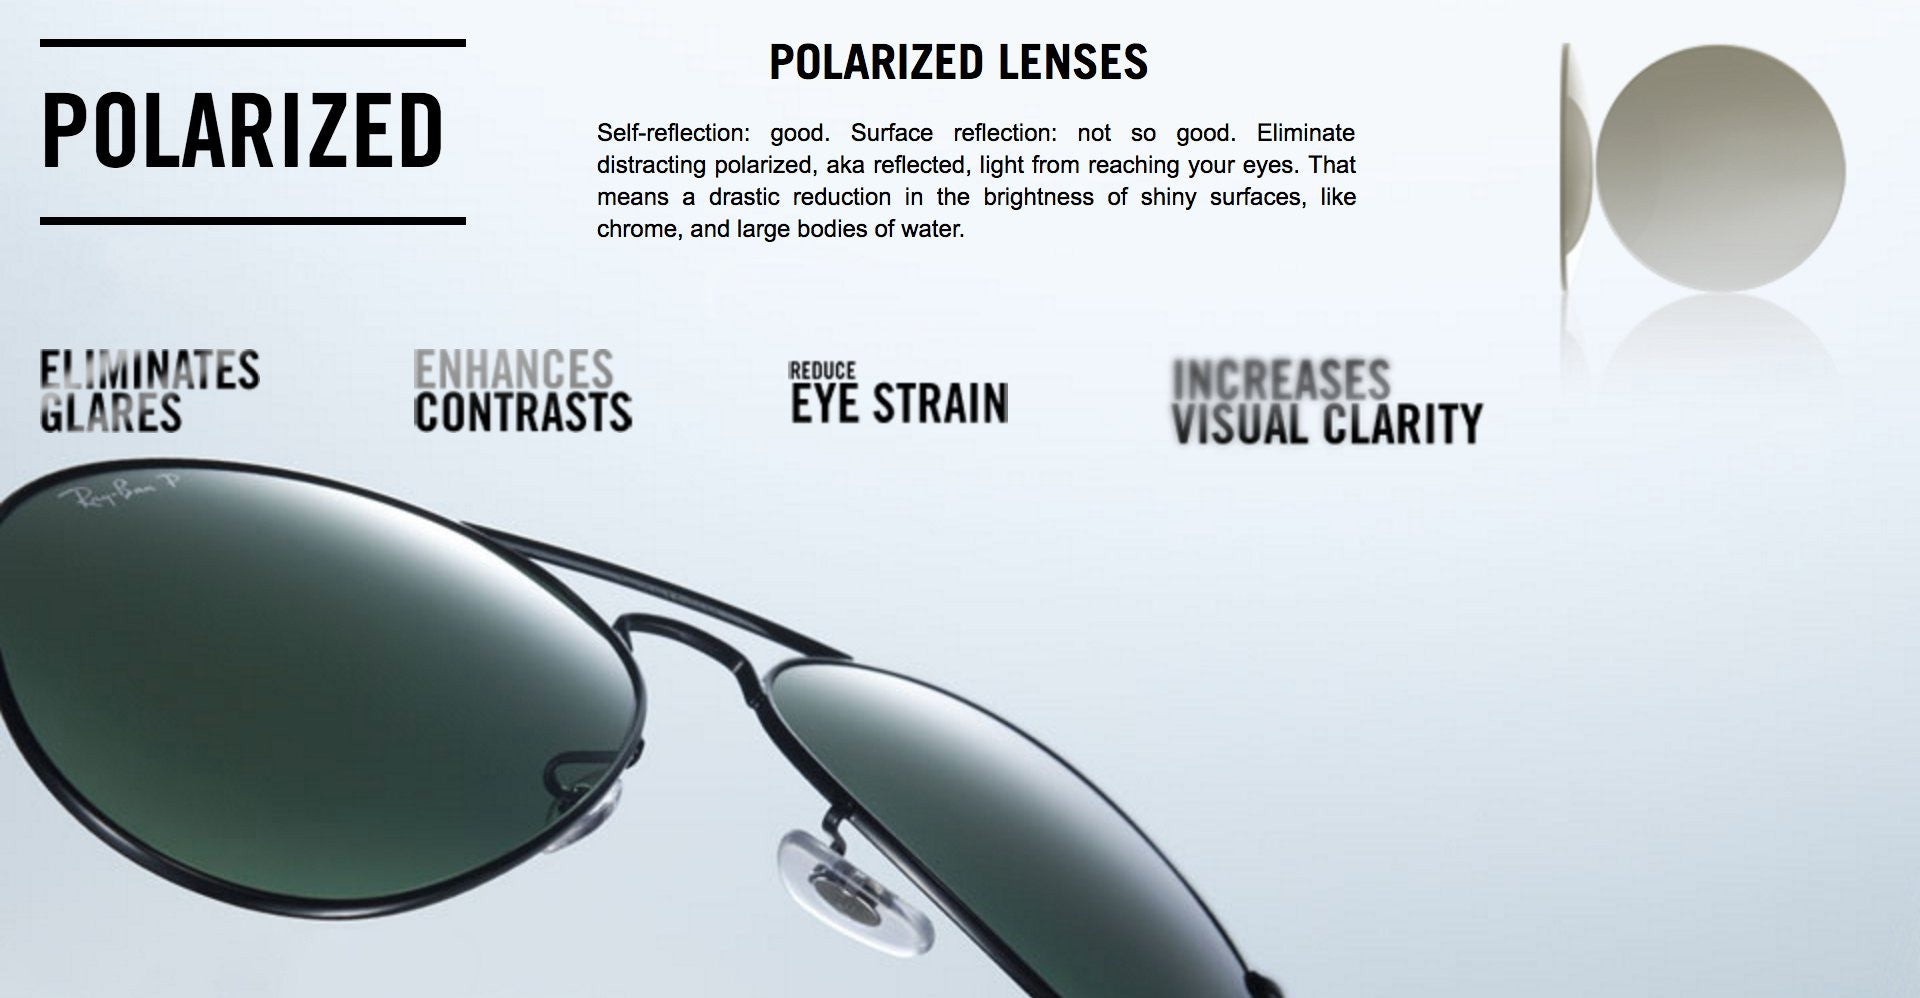 Ray-Ban Polarized Lenses